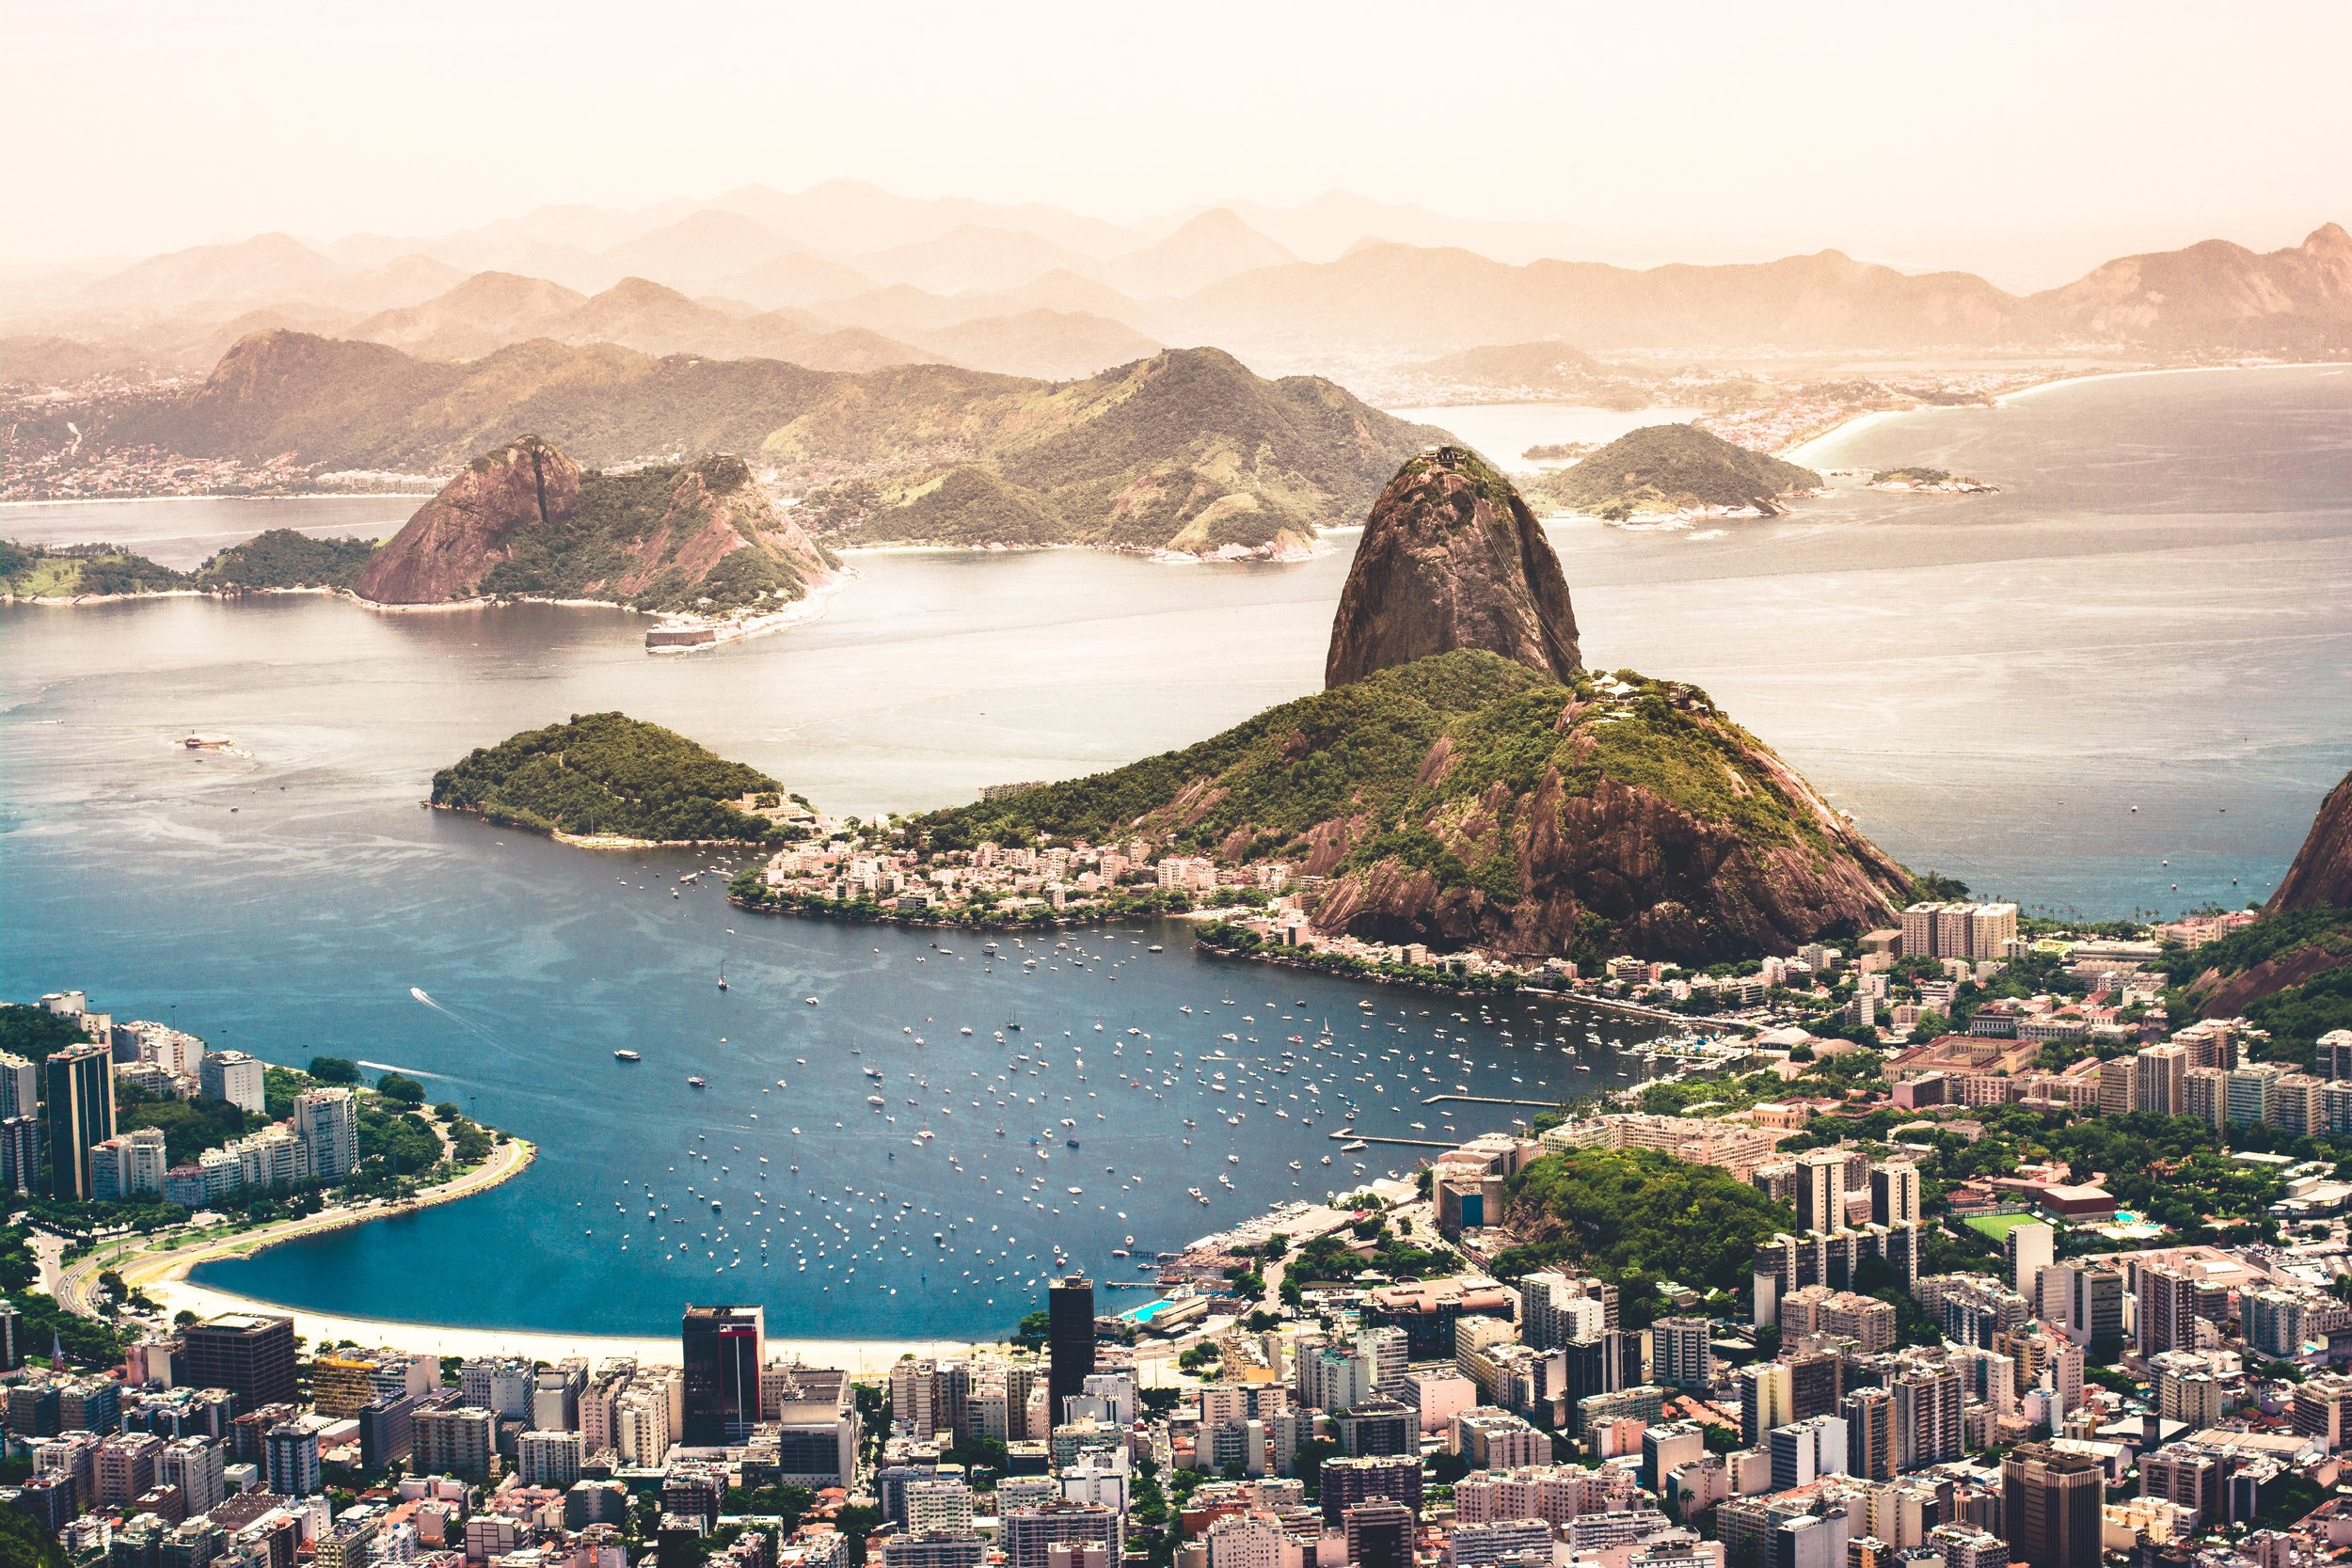 The warm, tropical climate of Brazil, combined with a dense human population in cities like Rio de Janeiro, allowed the virus to incubate and spread rapidly around Brazil and the surrounding countries. Photo credit: Augustín Diaz